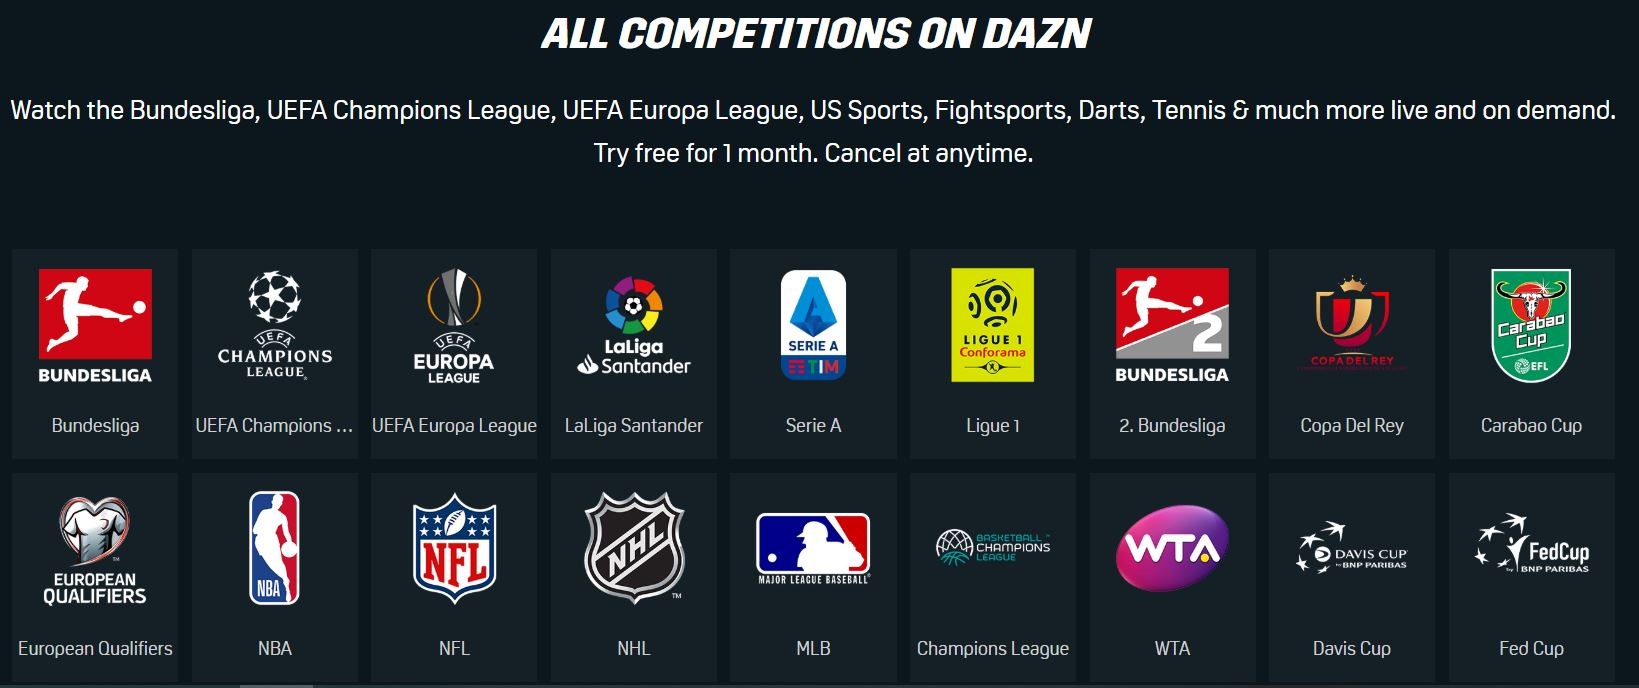 dazn - Why OTT Bundles Are Key For Streaming To Beat Cable TV - Touchstream